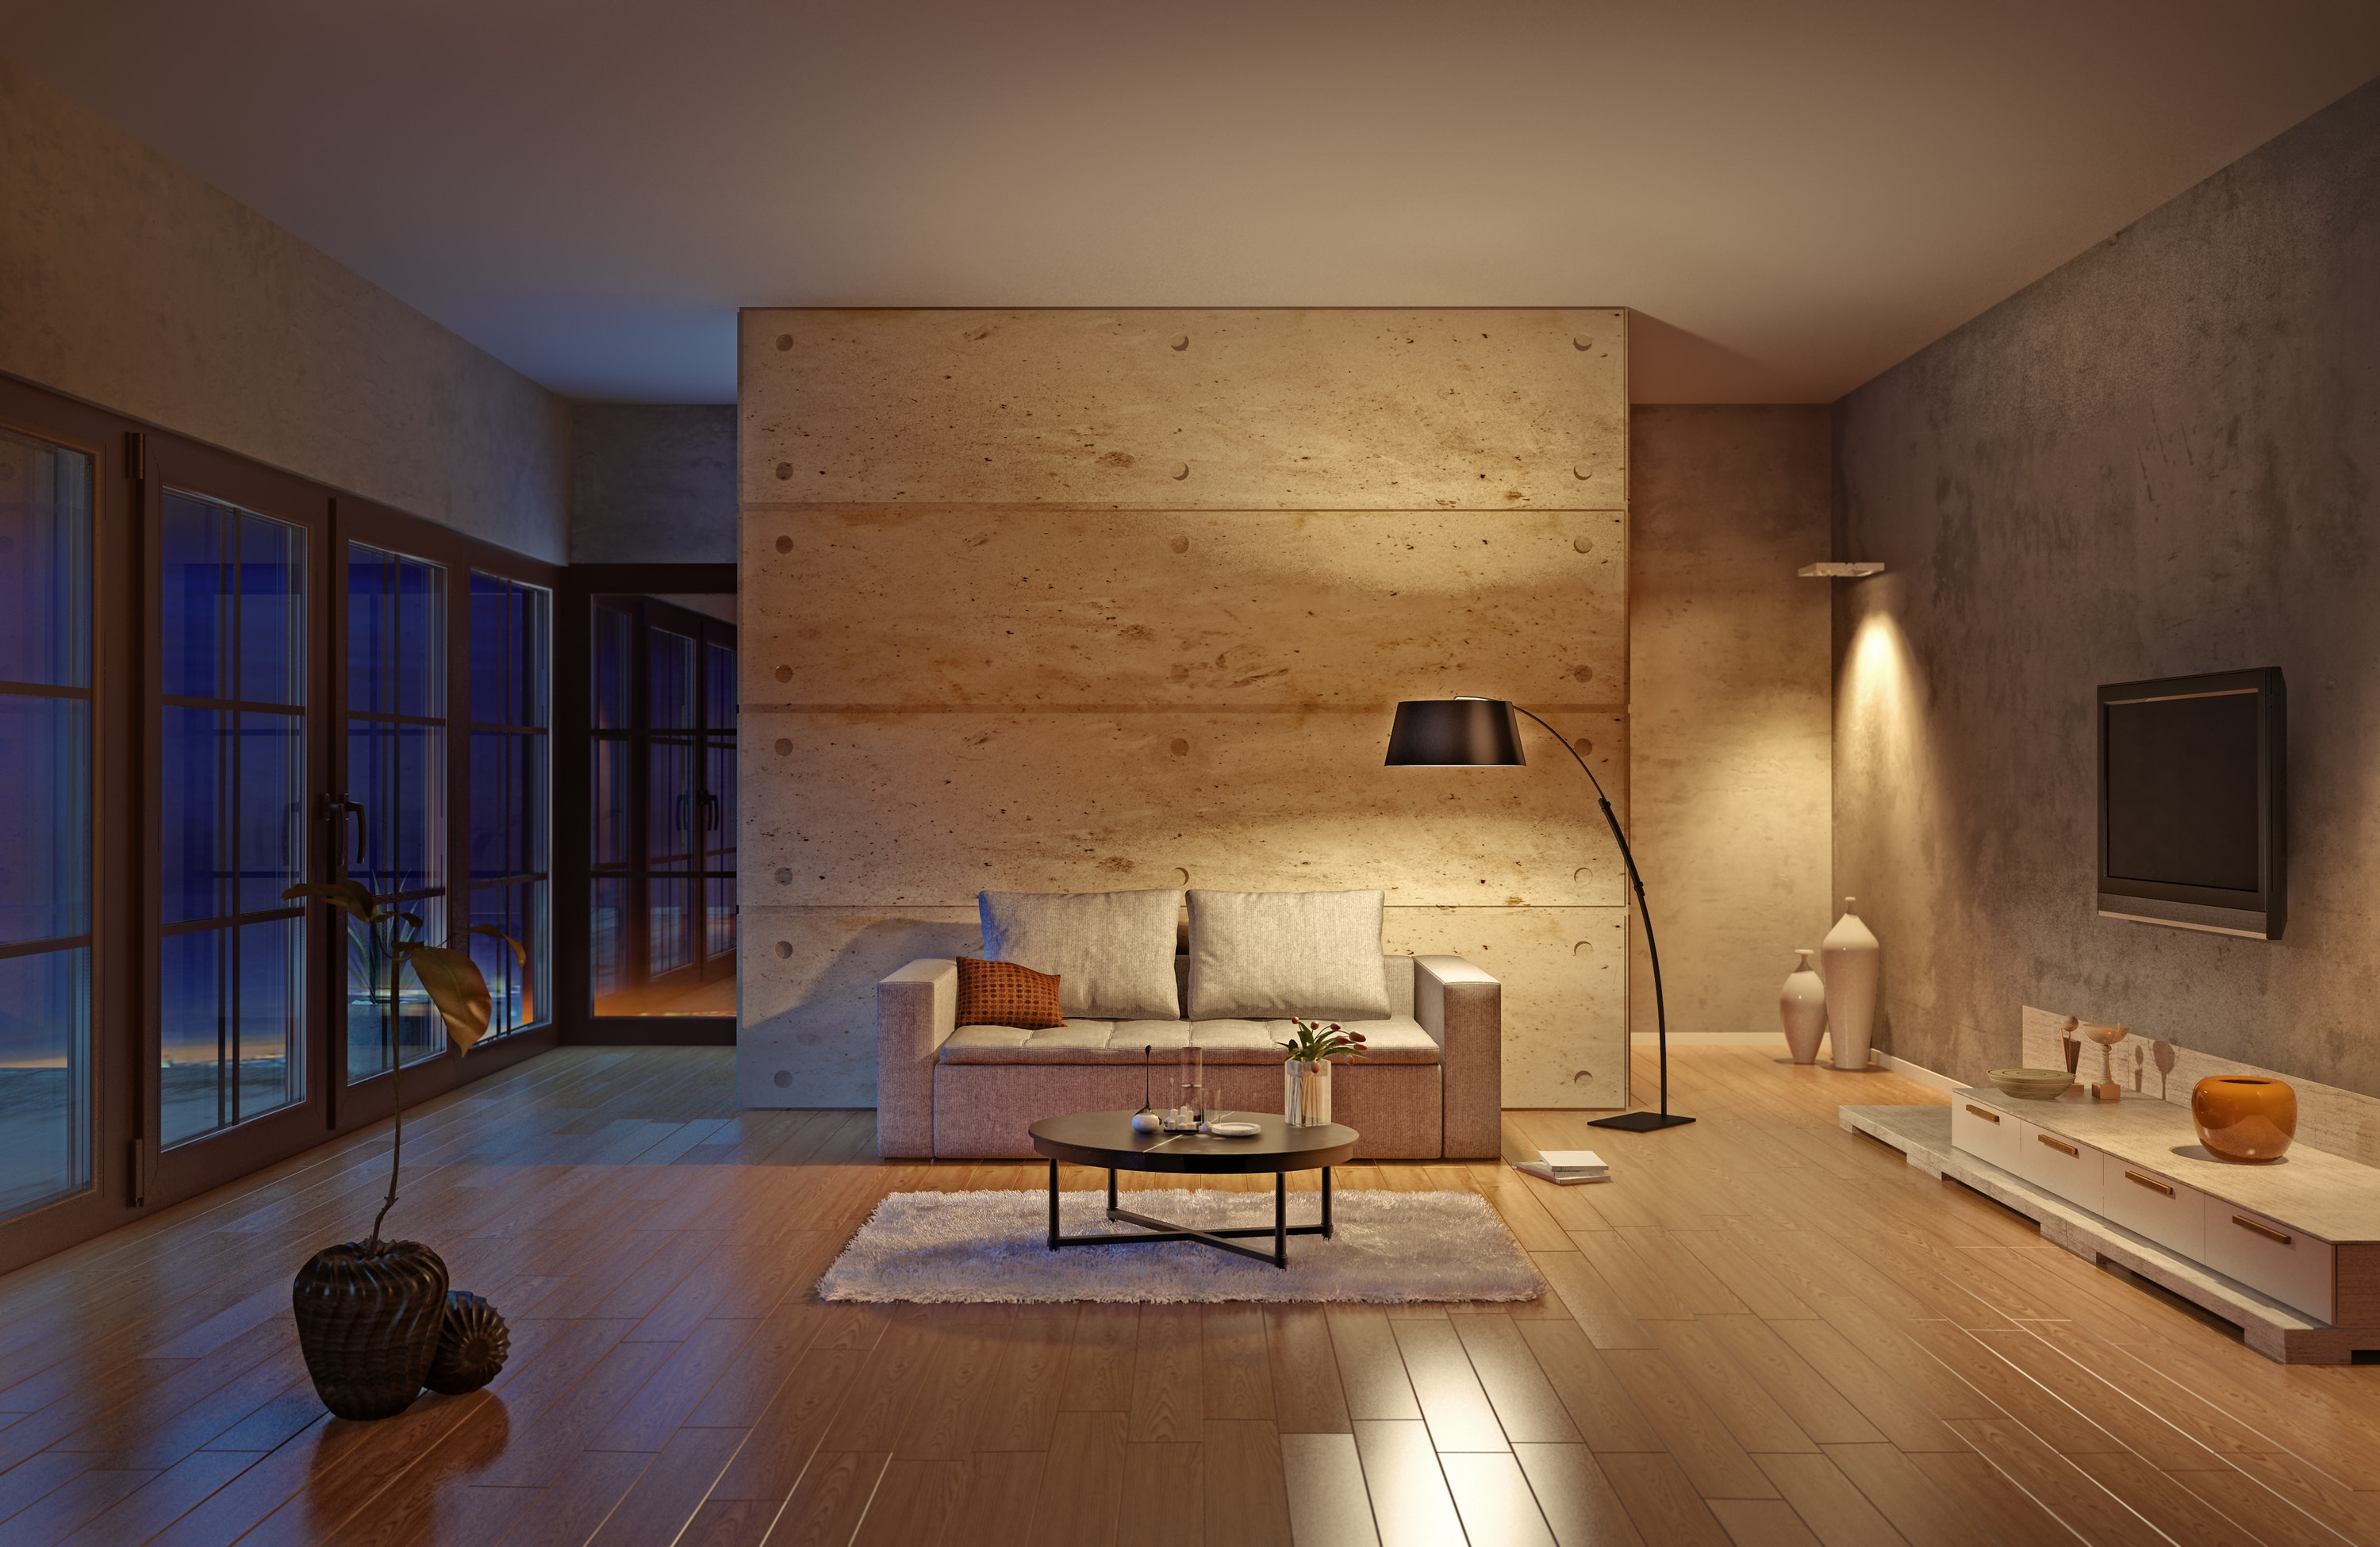 Create a s soft glow effect on walls